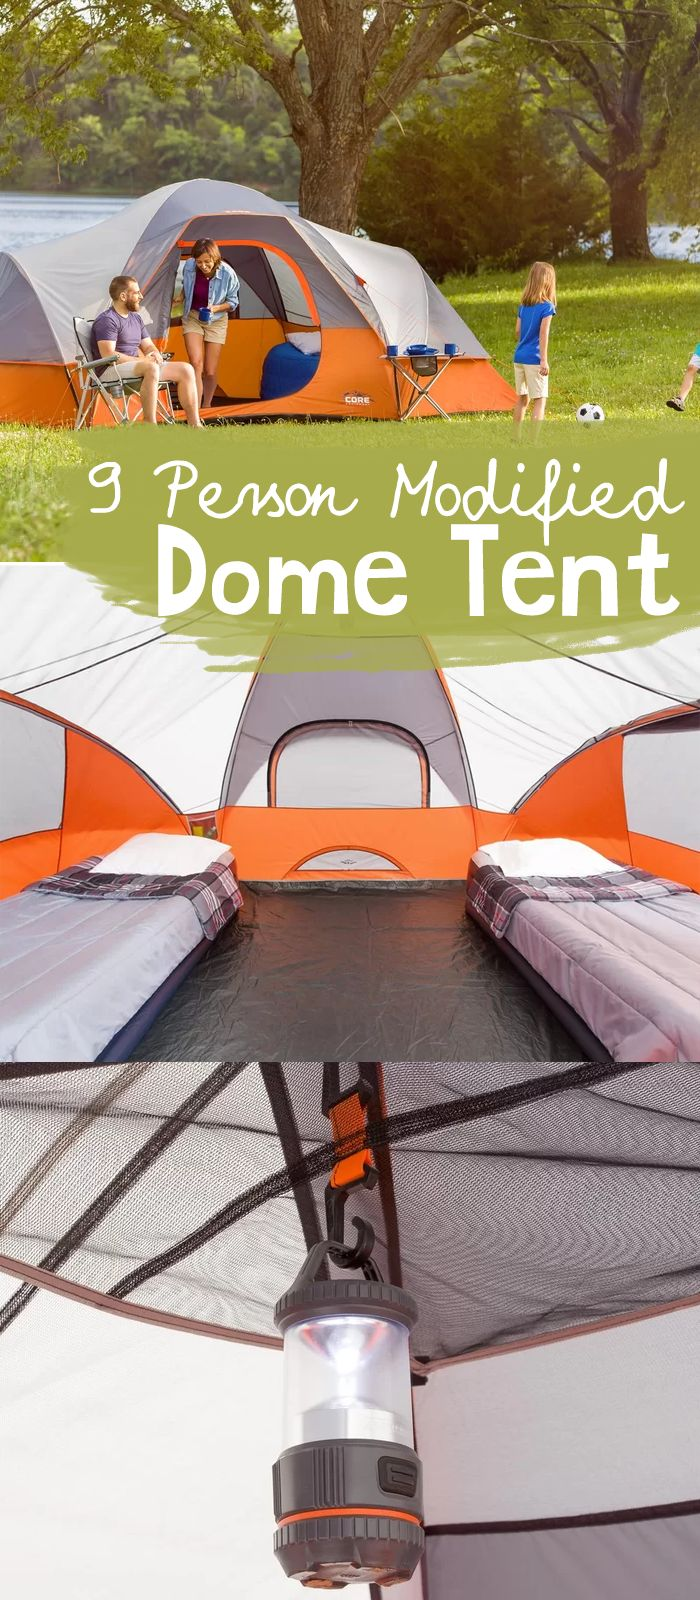 The Core 9 Person Modified Dome Tent features Core H20 block technology- water repellent fabrics with active bead technology for faster water runoff paired ... & Best 25+ Dome tent ideas on Pinterest | Tent camping Ozark ...